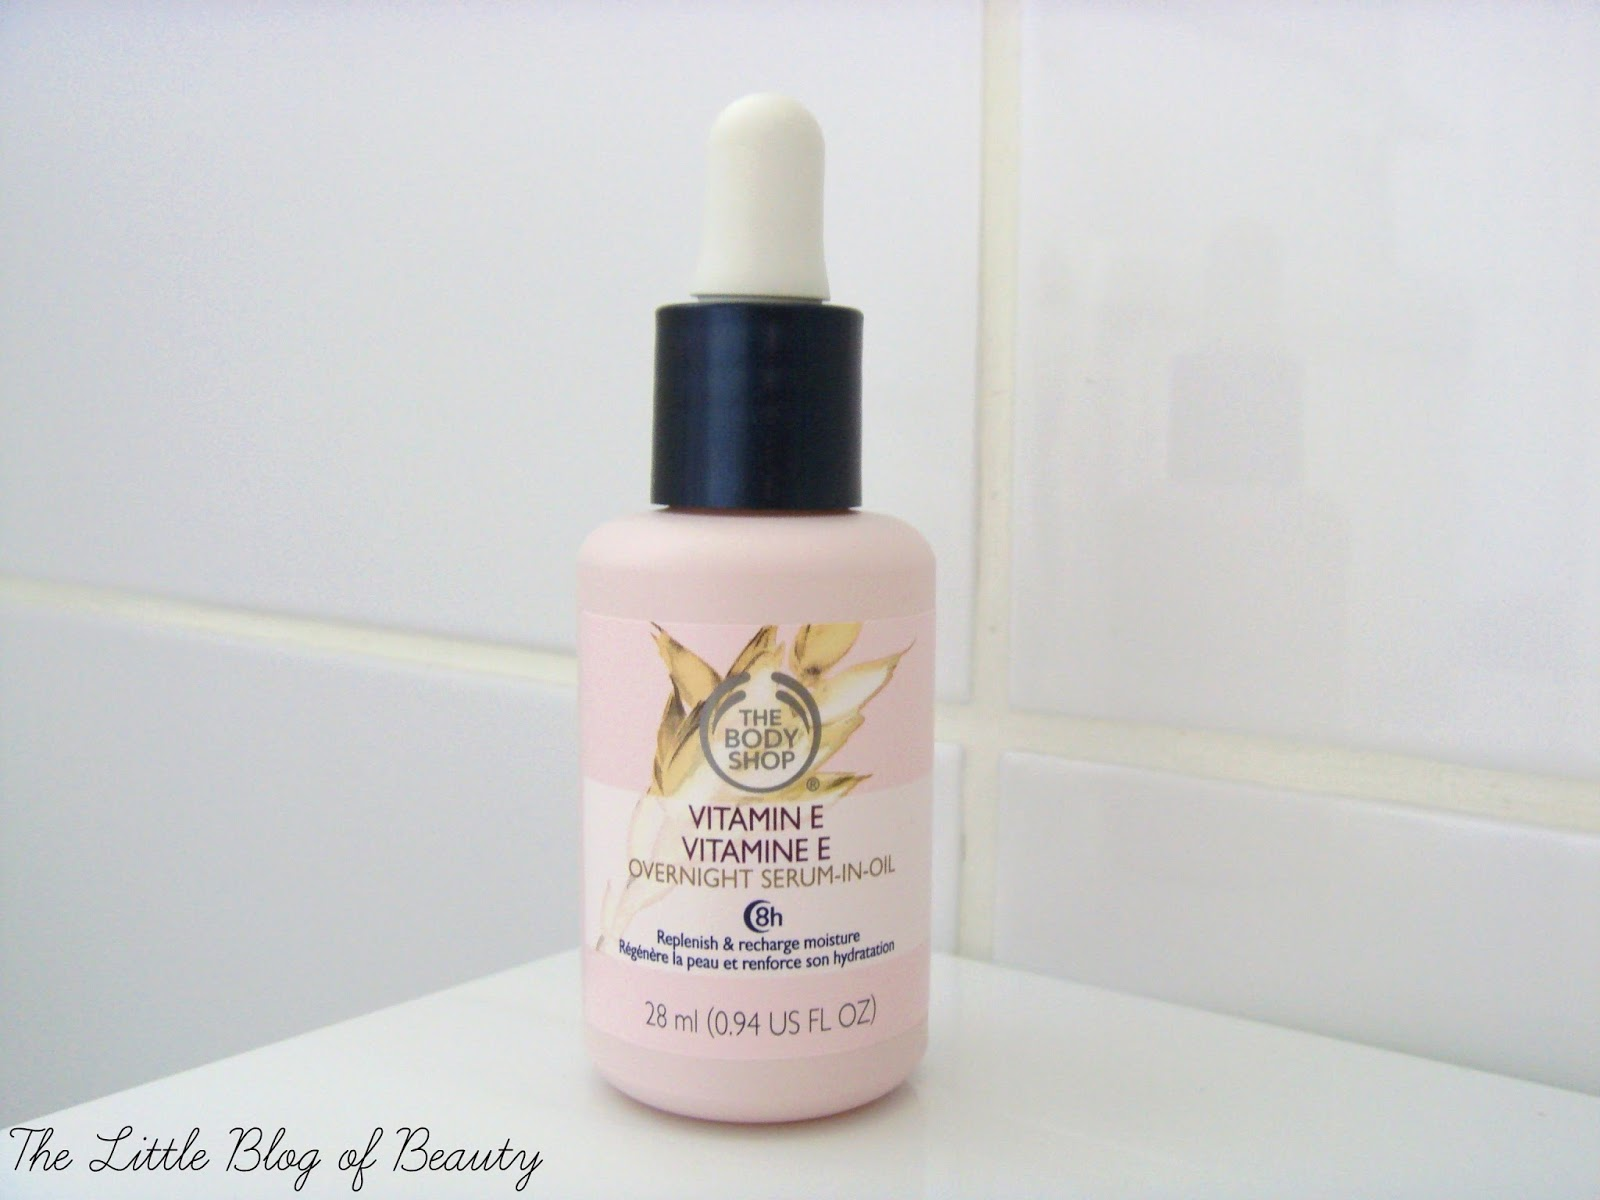 The Body Shop Vitamin E Overnight serum-in-oil